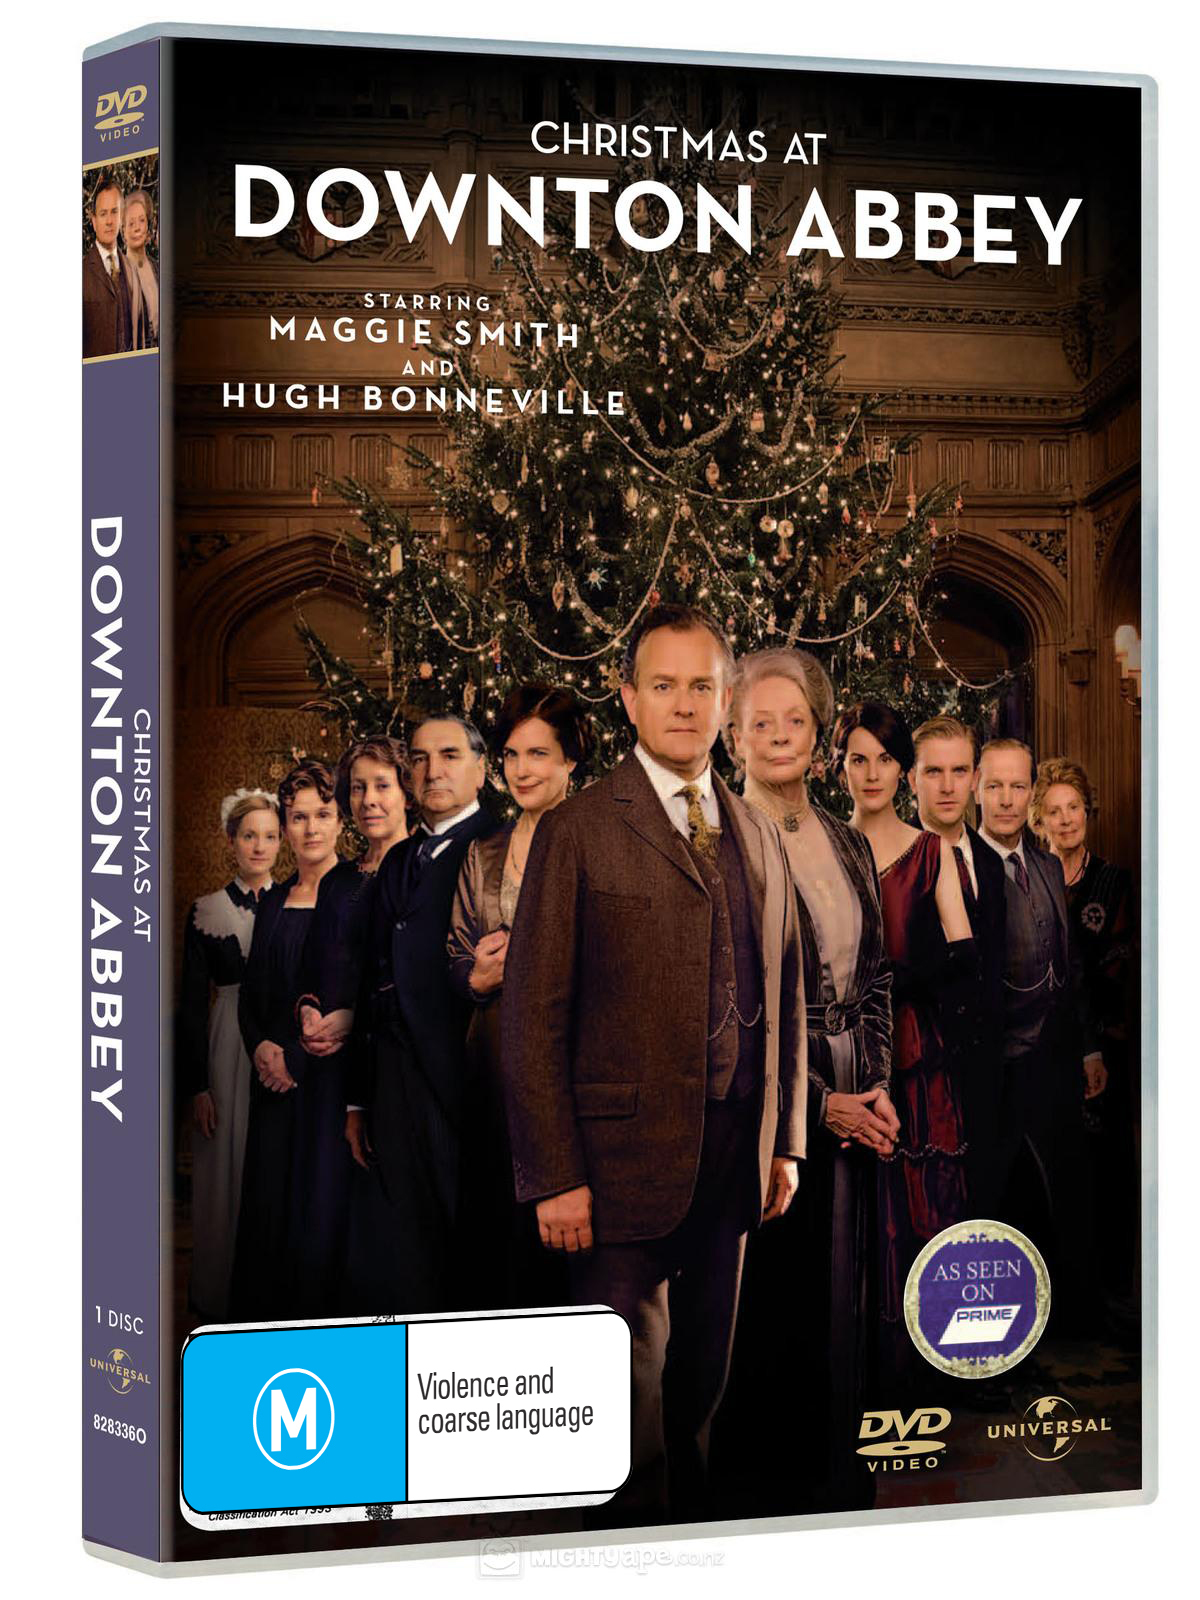 Christmas at Downton Abbey on DVD image